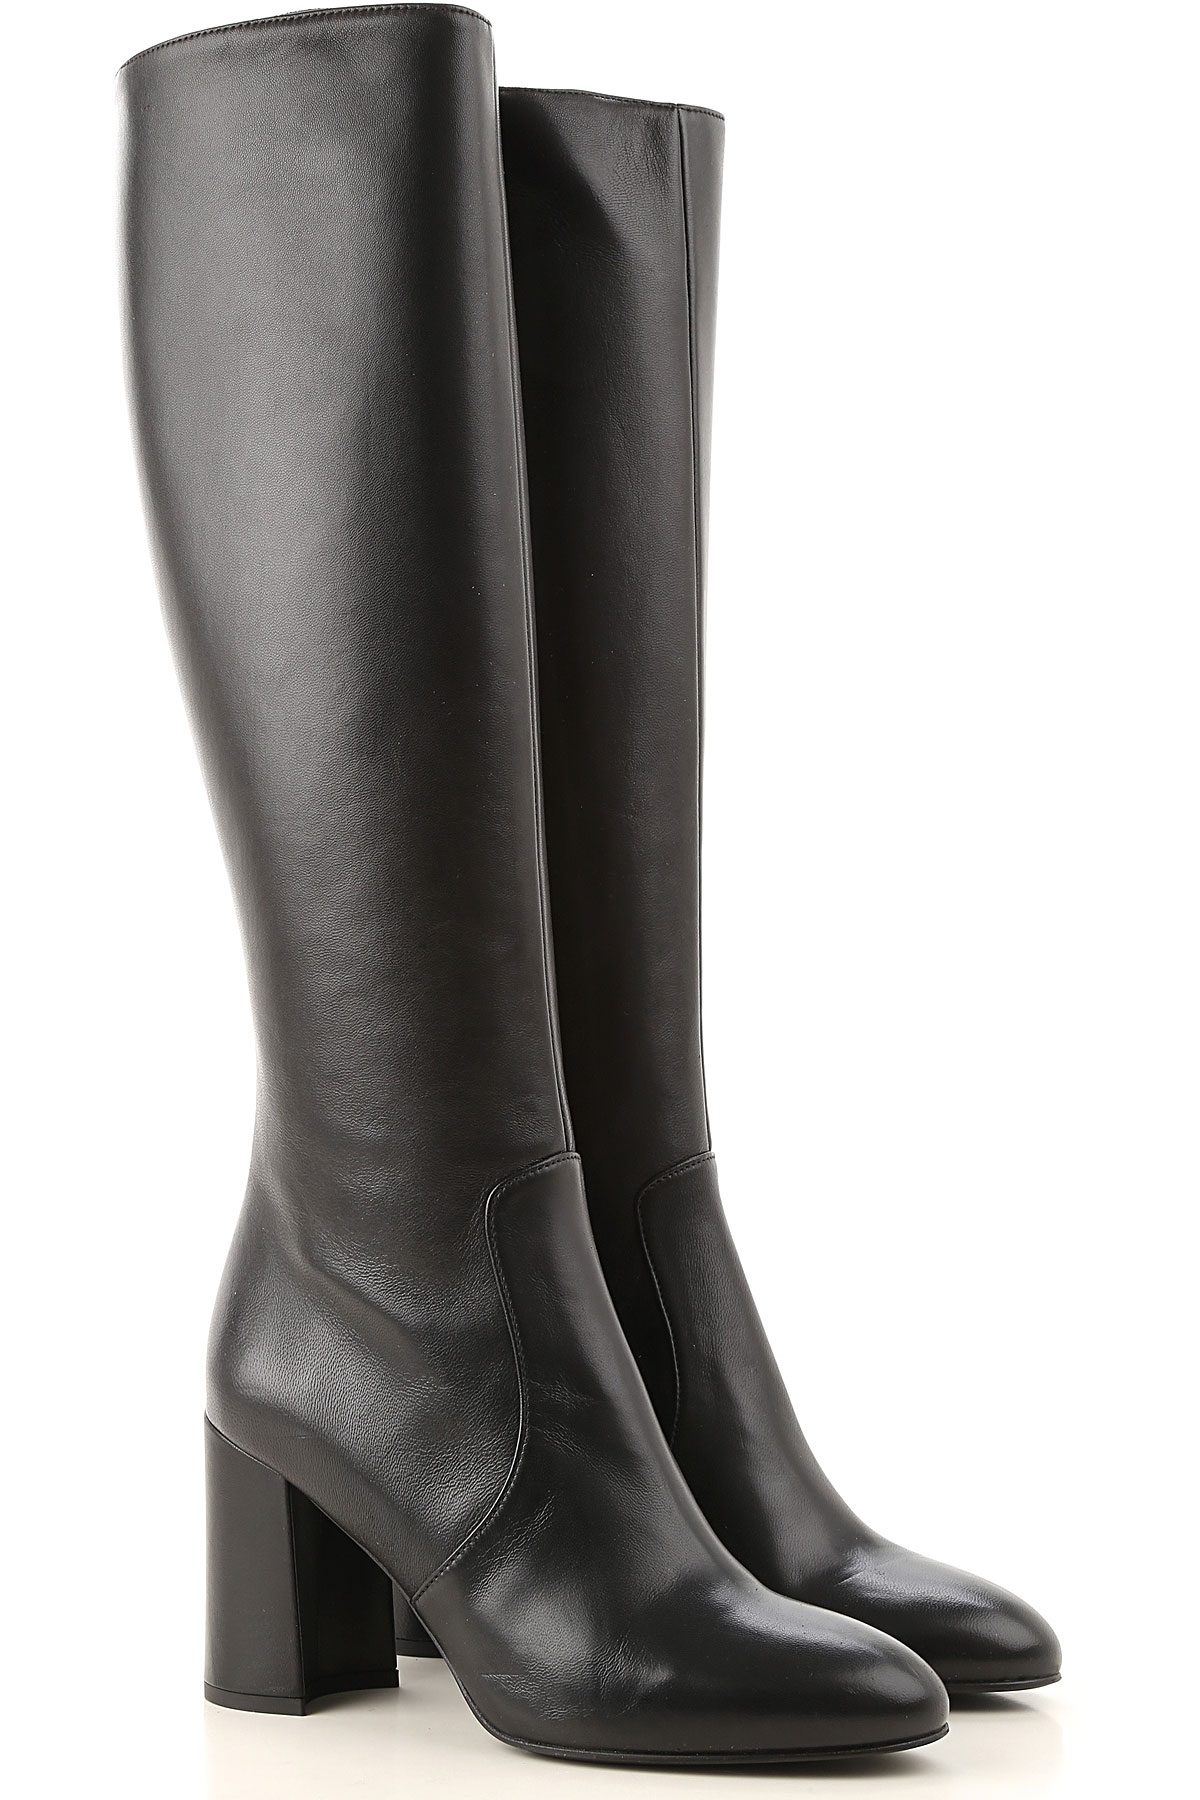 Lella Baldi Boots for Women, Booties On Sale, Black, Leather, 2019, 6 7 8